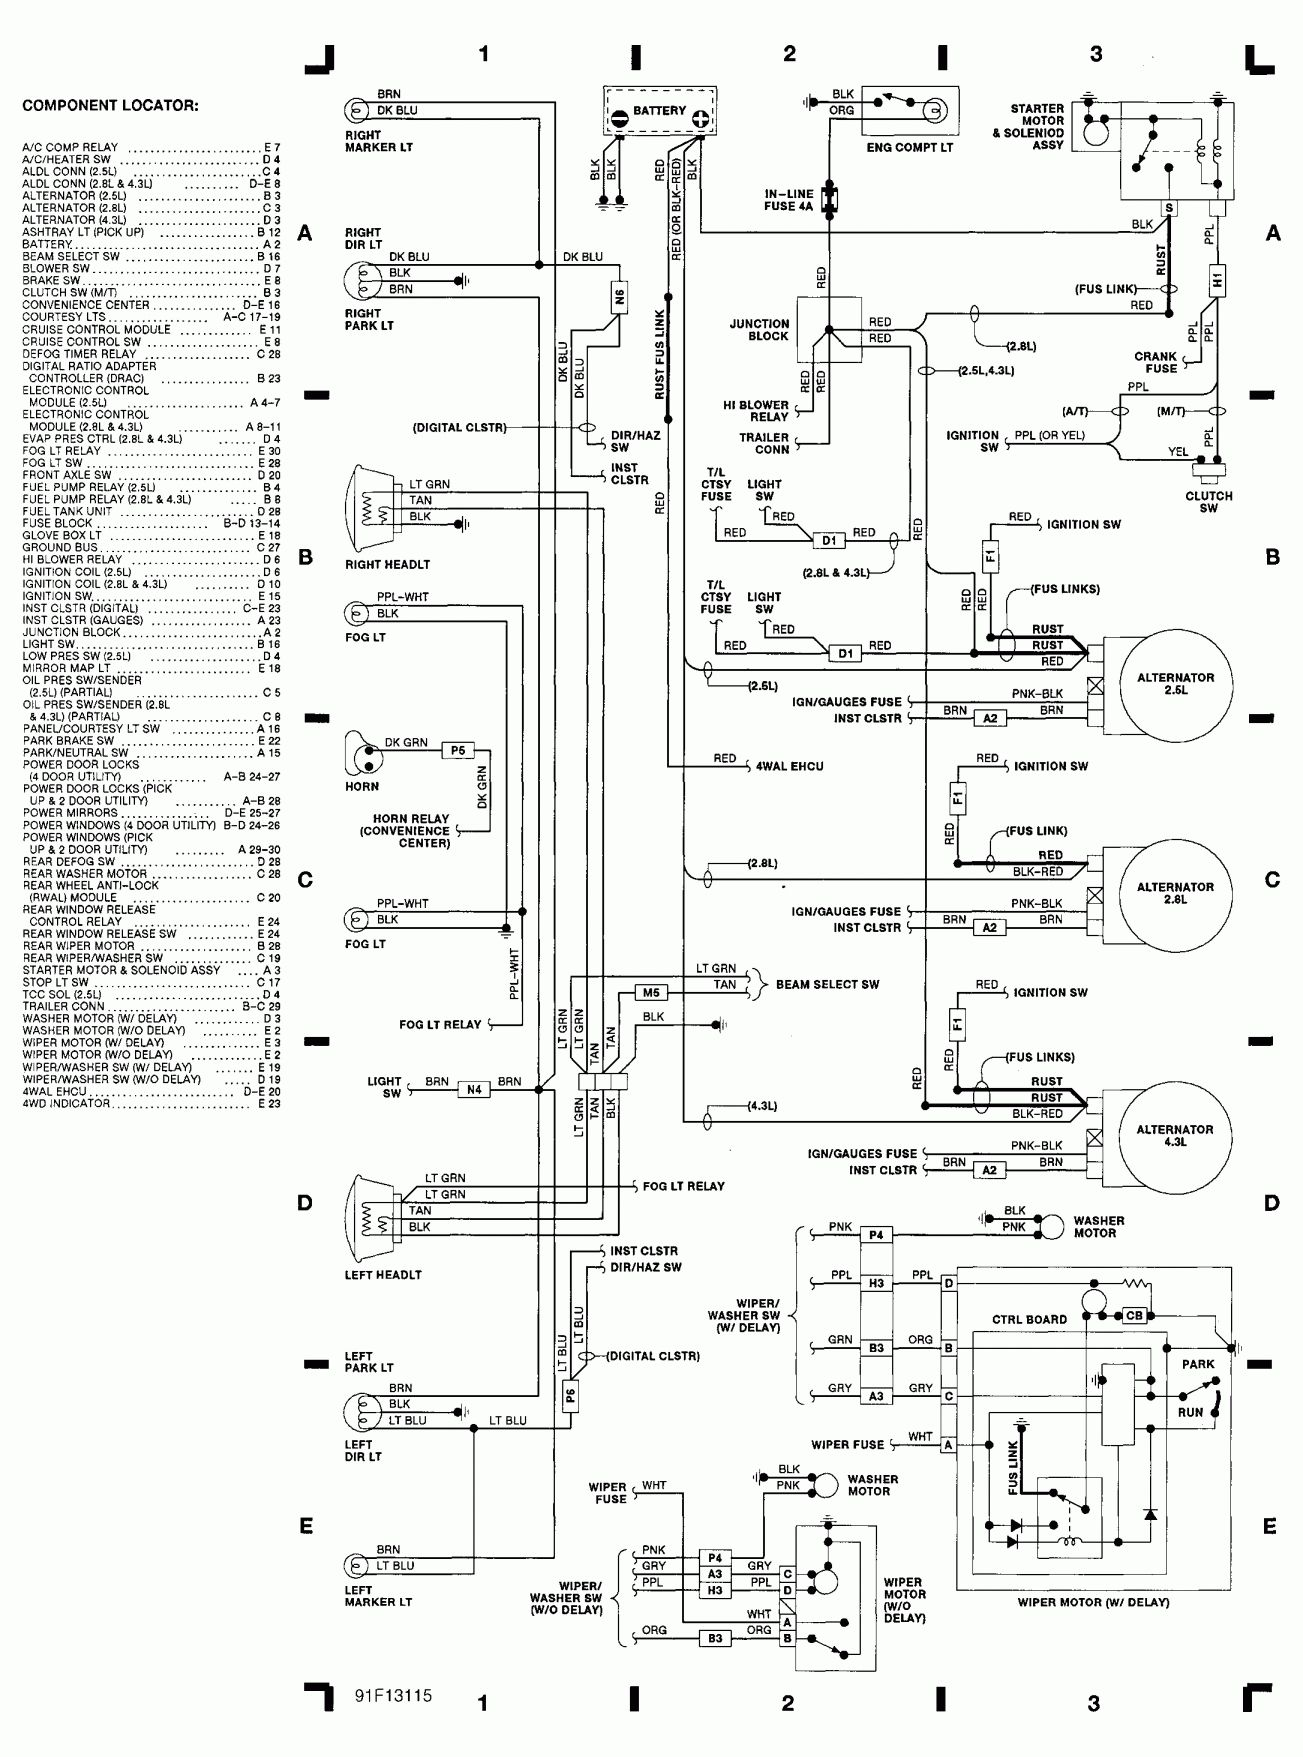 12+ 1991 Chevy Truck Wiring Diagram1991 chevy silverado